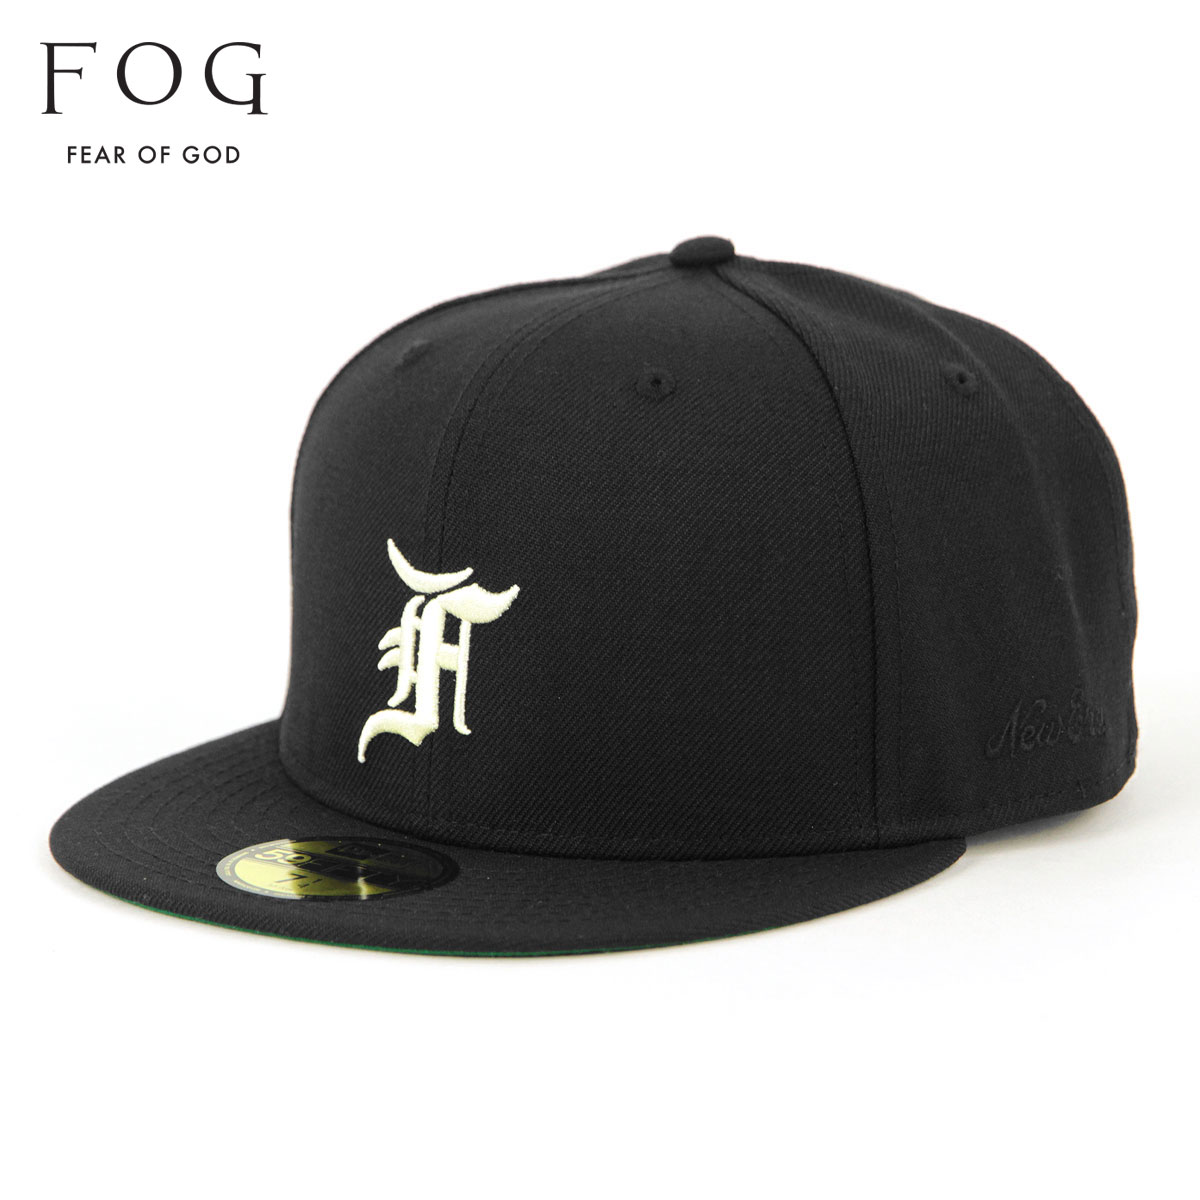 メンズ帽子, キャップ  FEAR OF GOD FOG - FEAR OF GOD ESSENTIALS X NEW ERA 59FIFTY FITTED HAT BLACK